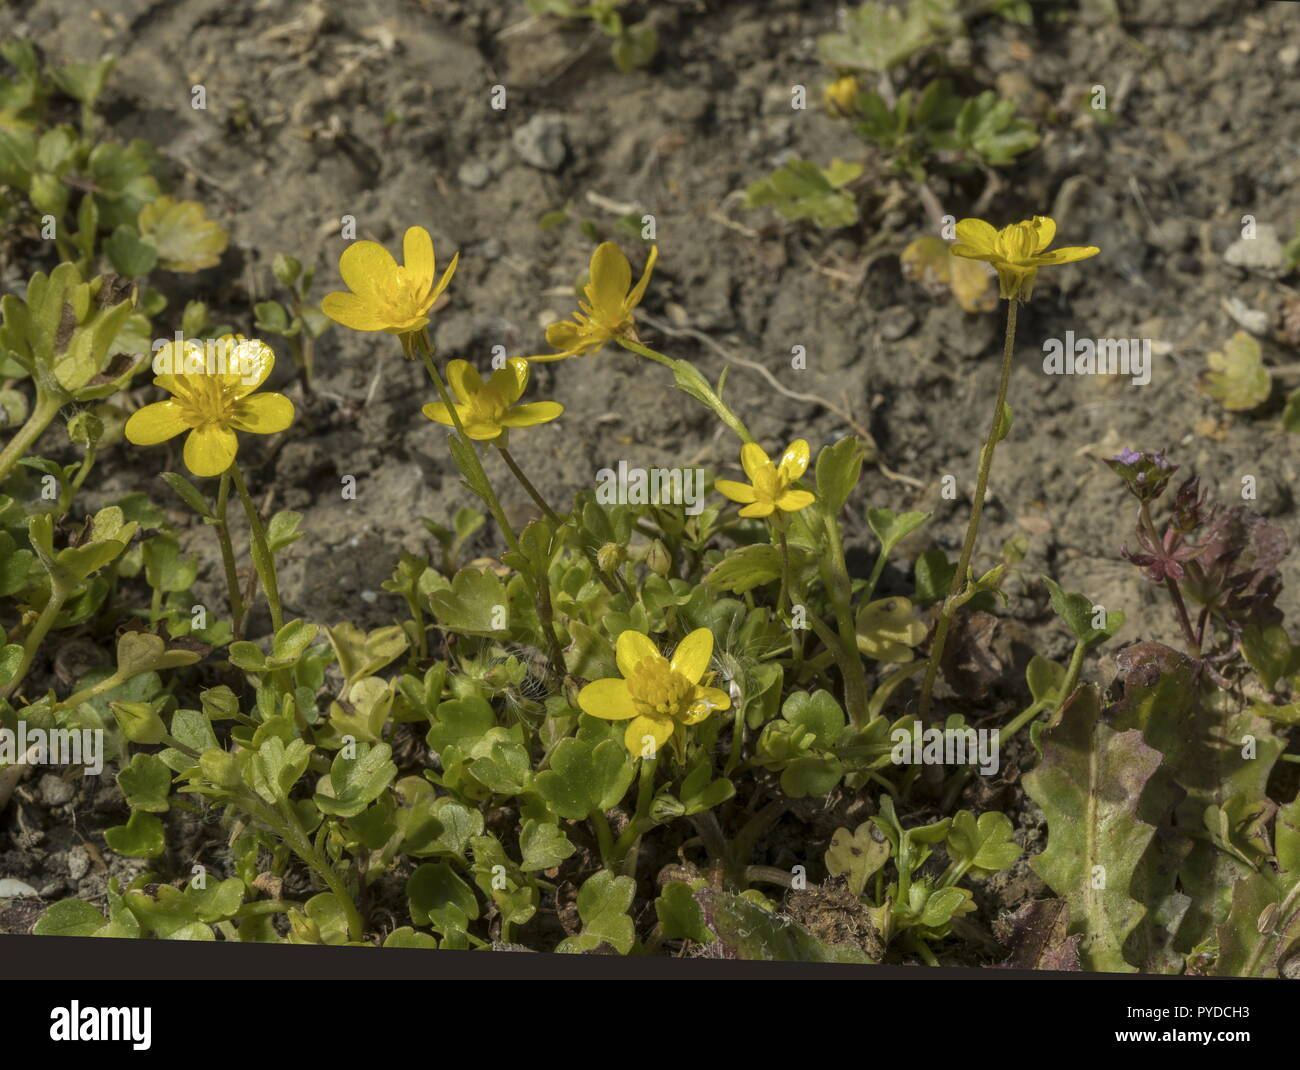 Hairy buttercup, Ranunculus sardous, in flower in spring. - Stock Image